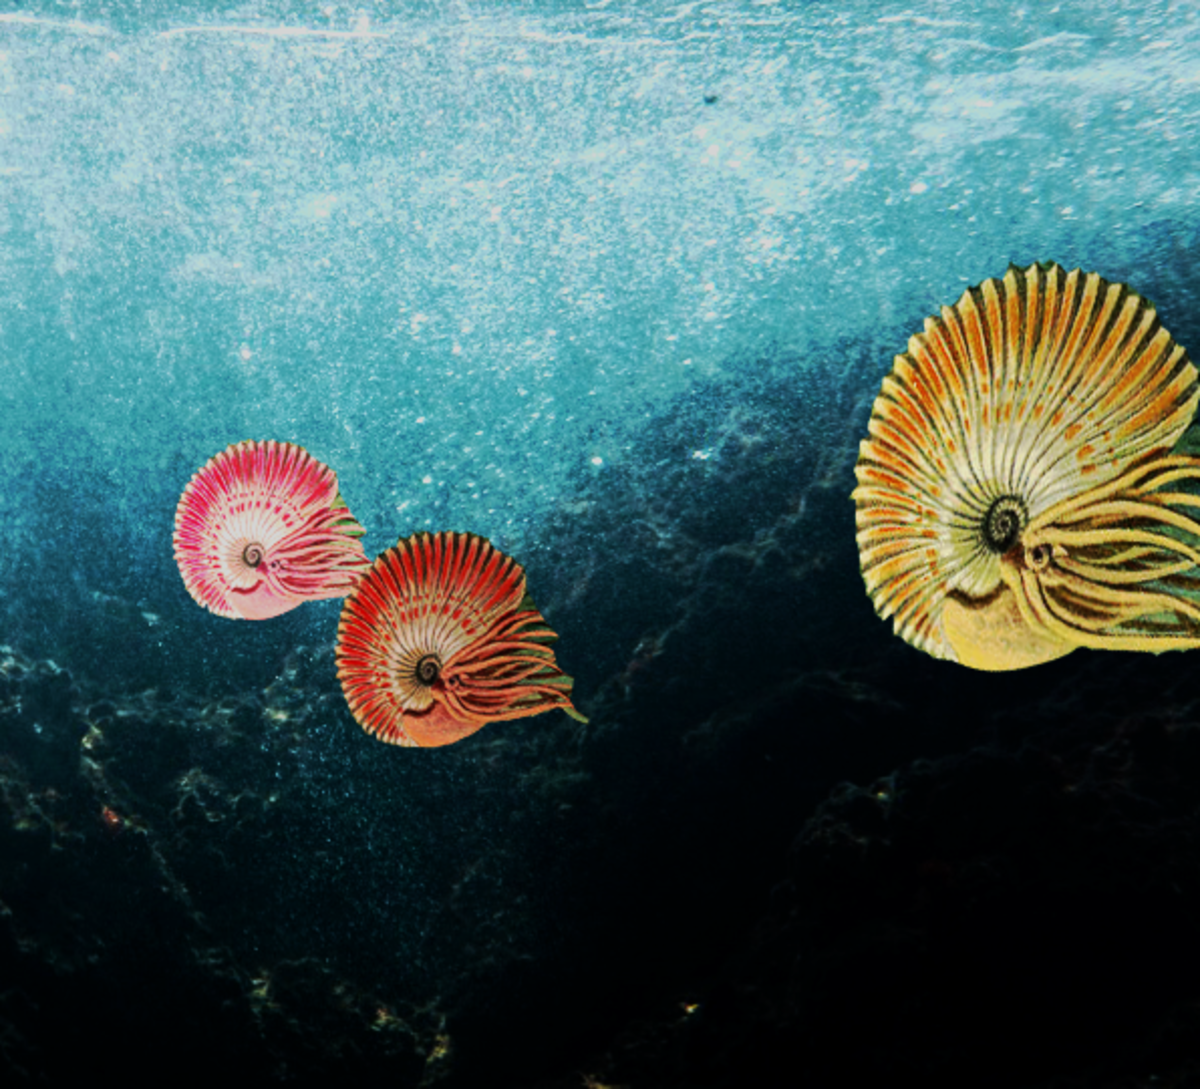 Artist's representation of a school of Ammonites